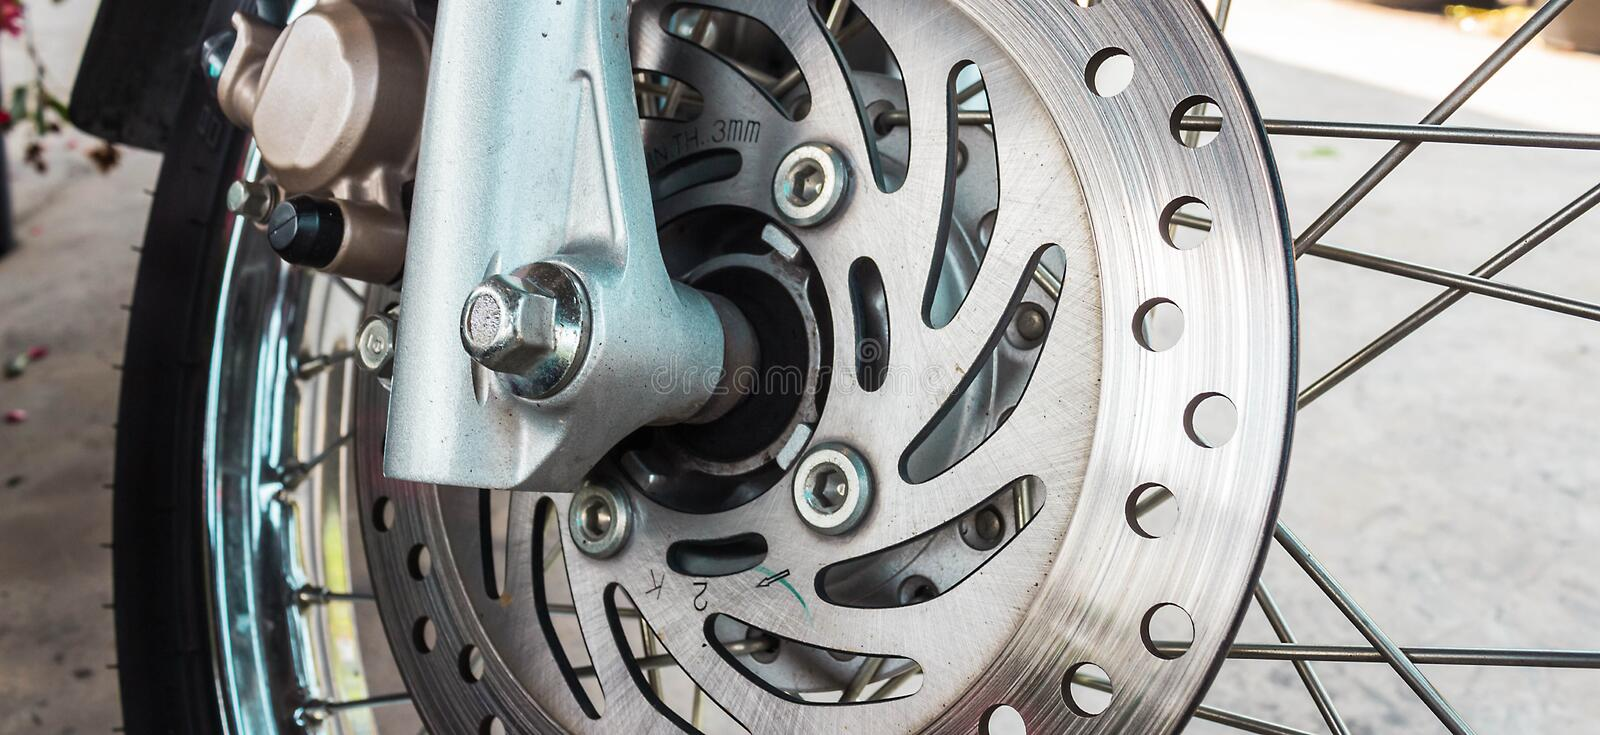 Motorcycle brakes. A general background royalty free stock photography